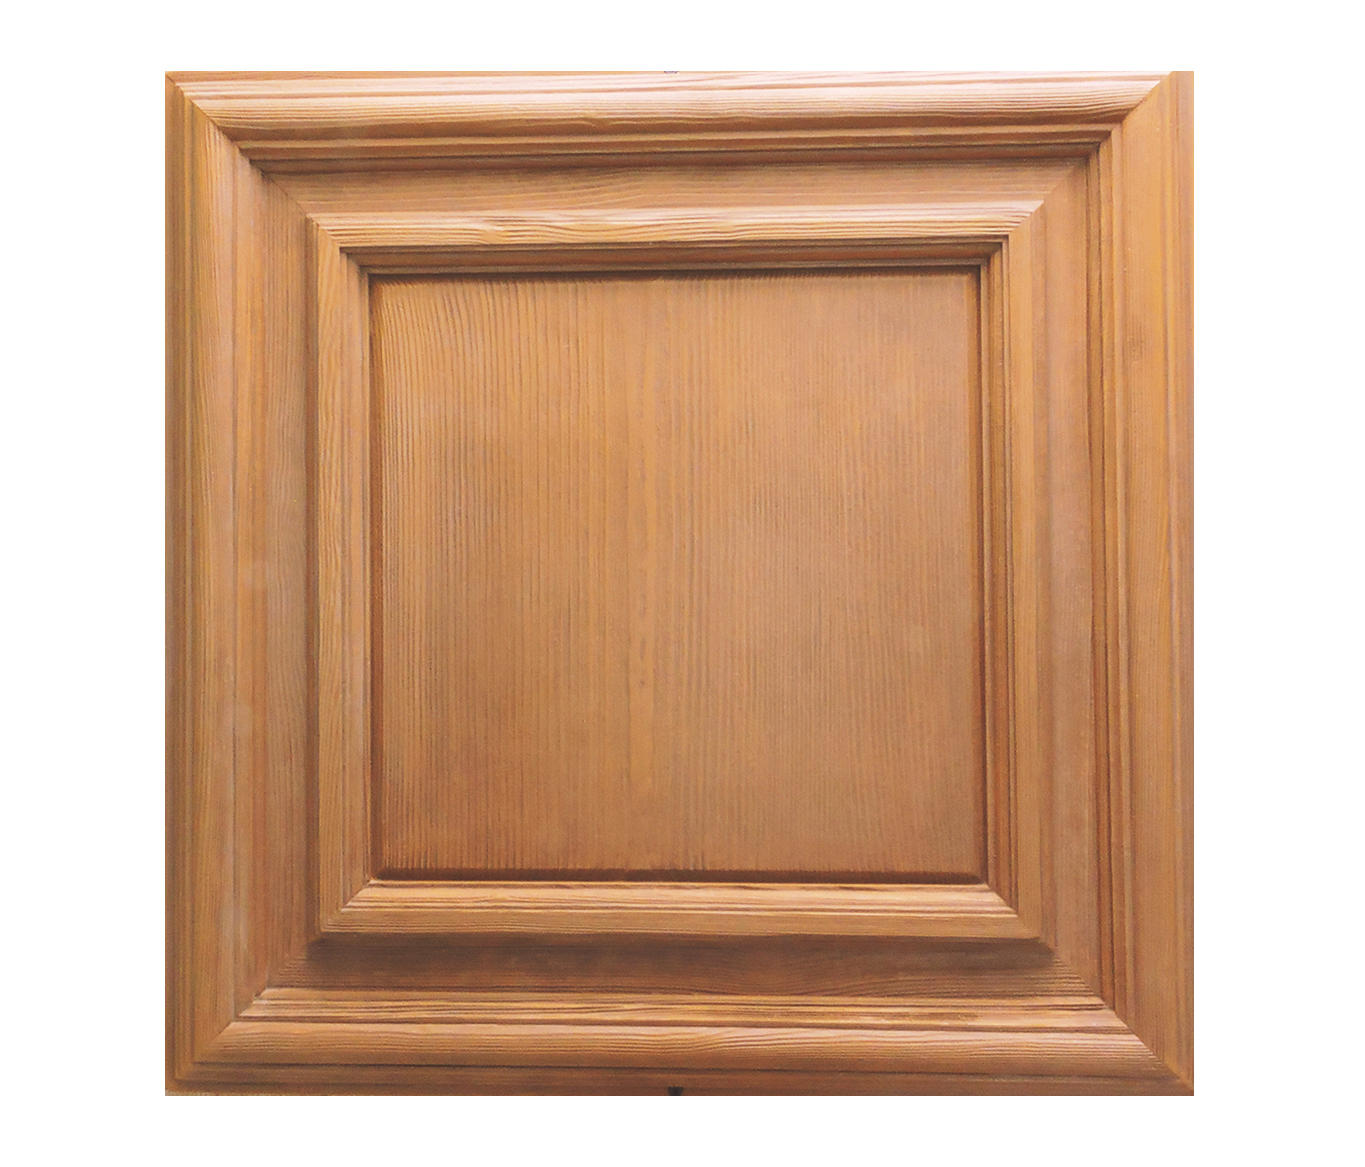 Classic woodgrain panel ceiling tile mineral composite panels classic woodgrain panel ceiling tile by above view inc mineral composite panels dailygadgetfo Image collections